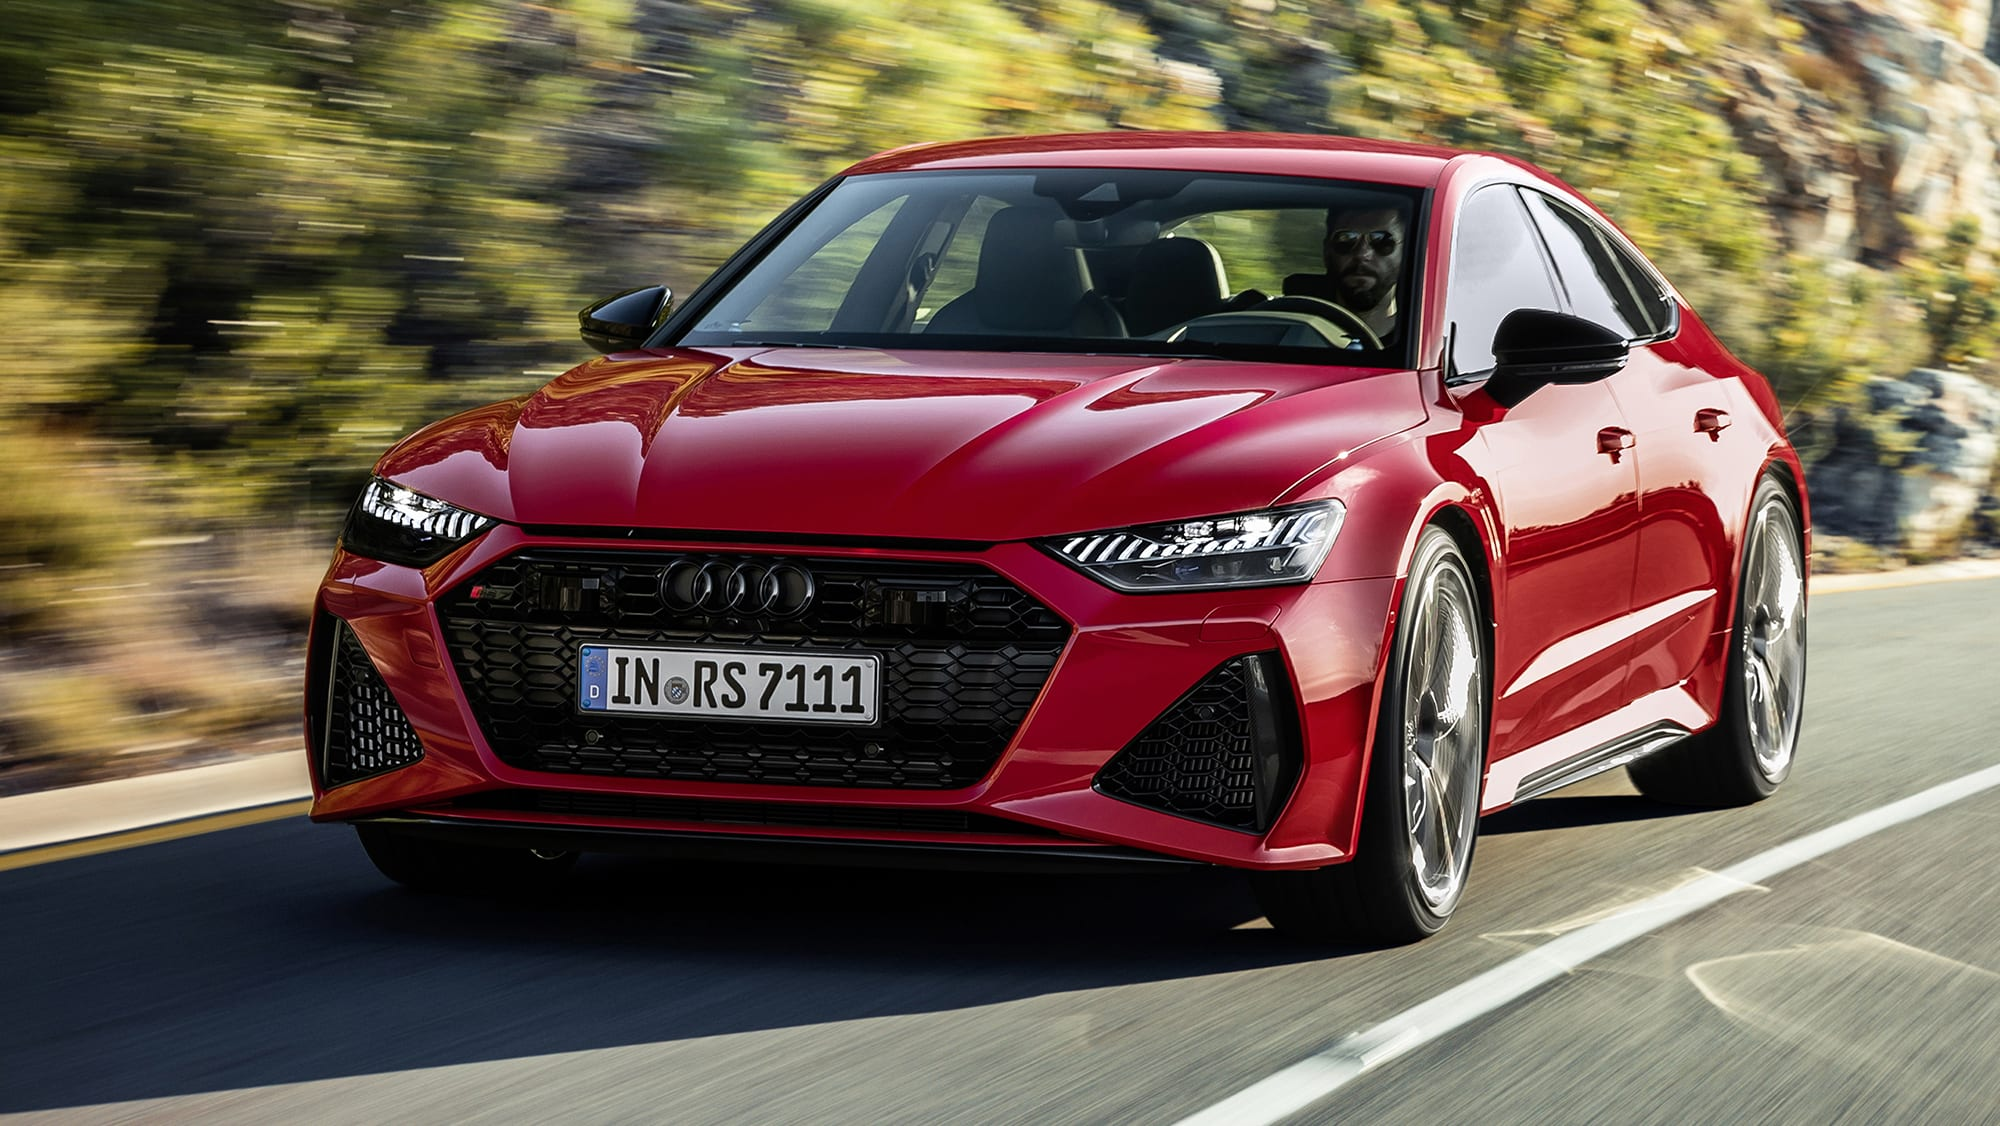 2020 Audi Rs7 Revealed Here Next Year Caradvice